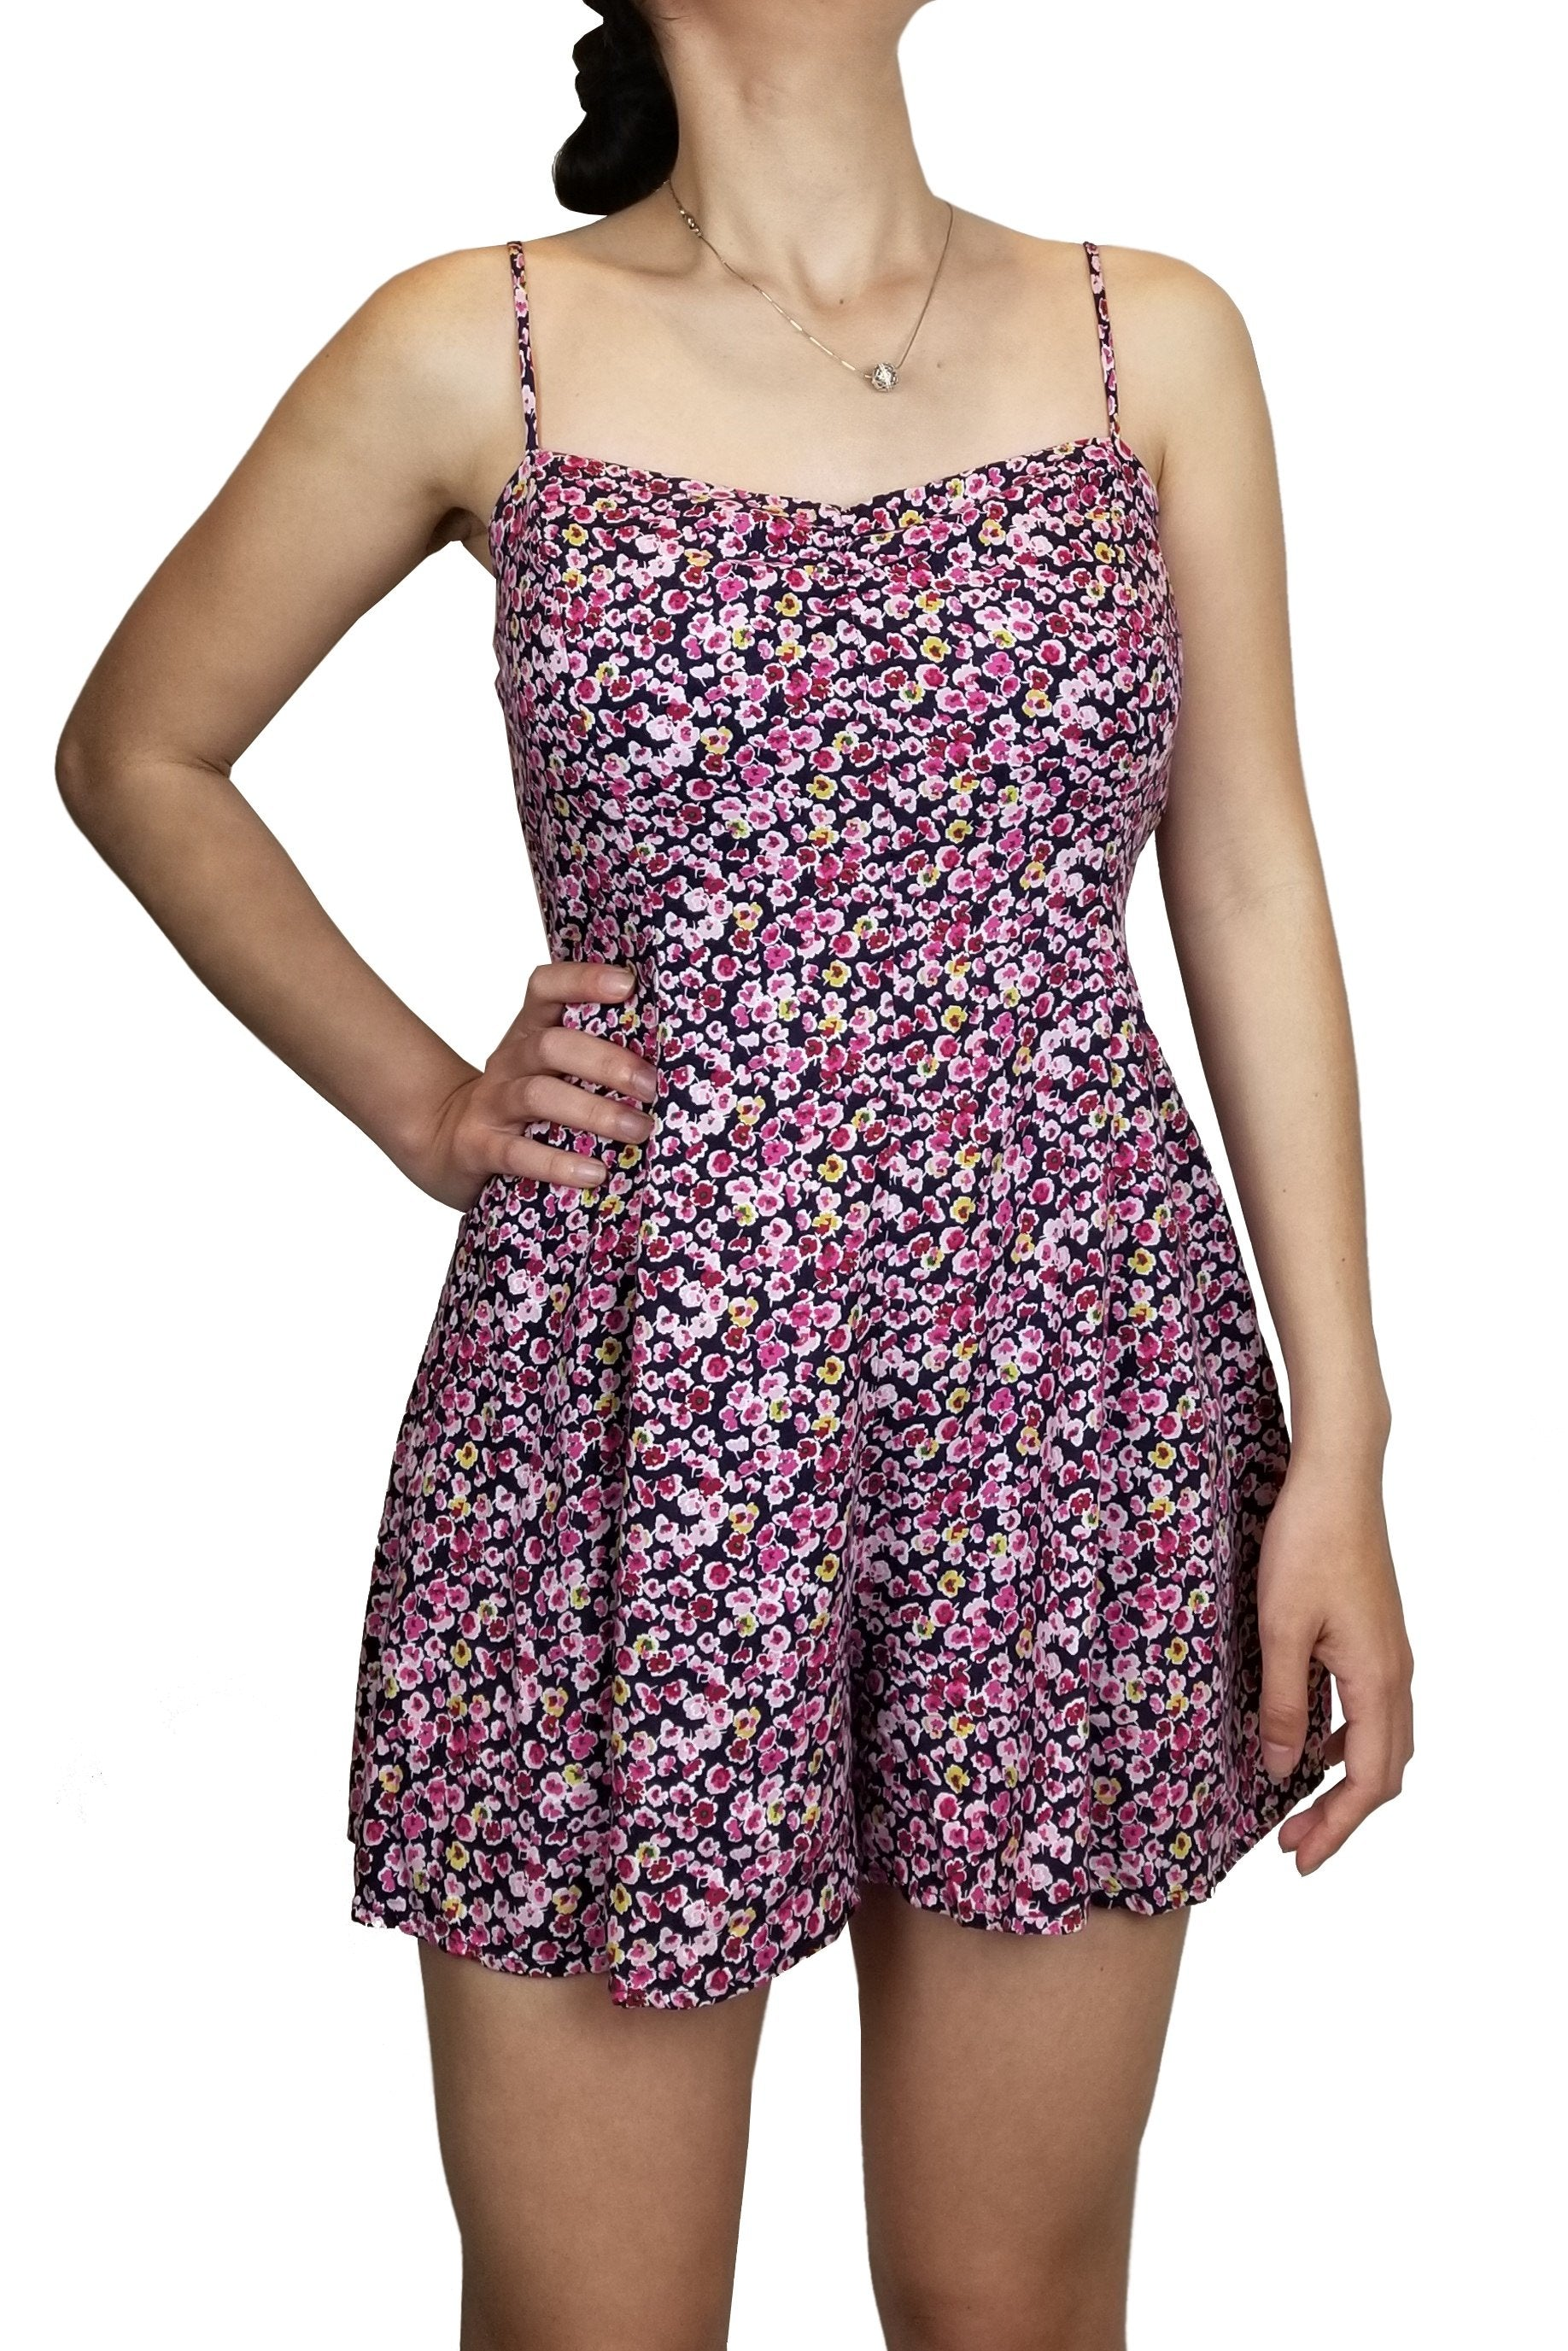 Timing Simple Flower Print Romper, Petite cute floral romper, casual walk on the beach anyone?, Pink, 100% Rayon, women's Dresses & Rompers, women's Pink Dresses & Rompers, Timing women's Dresses & Rompers, Dress, cute spaghetti strap mini dress, summer floral dress with self-tie back, summer floral romper